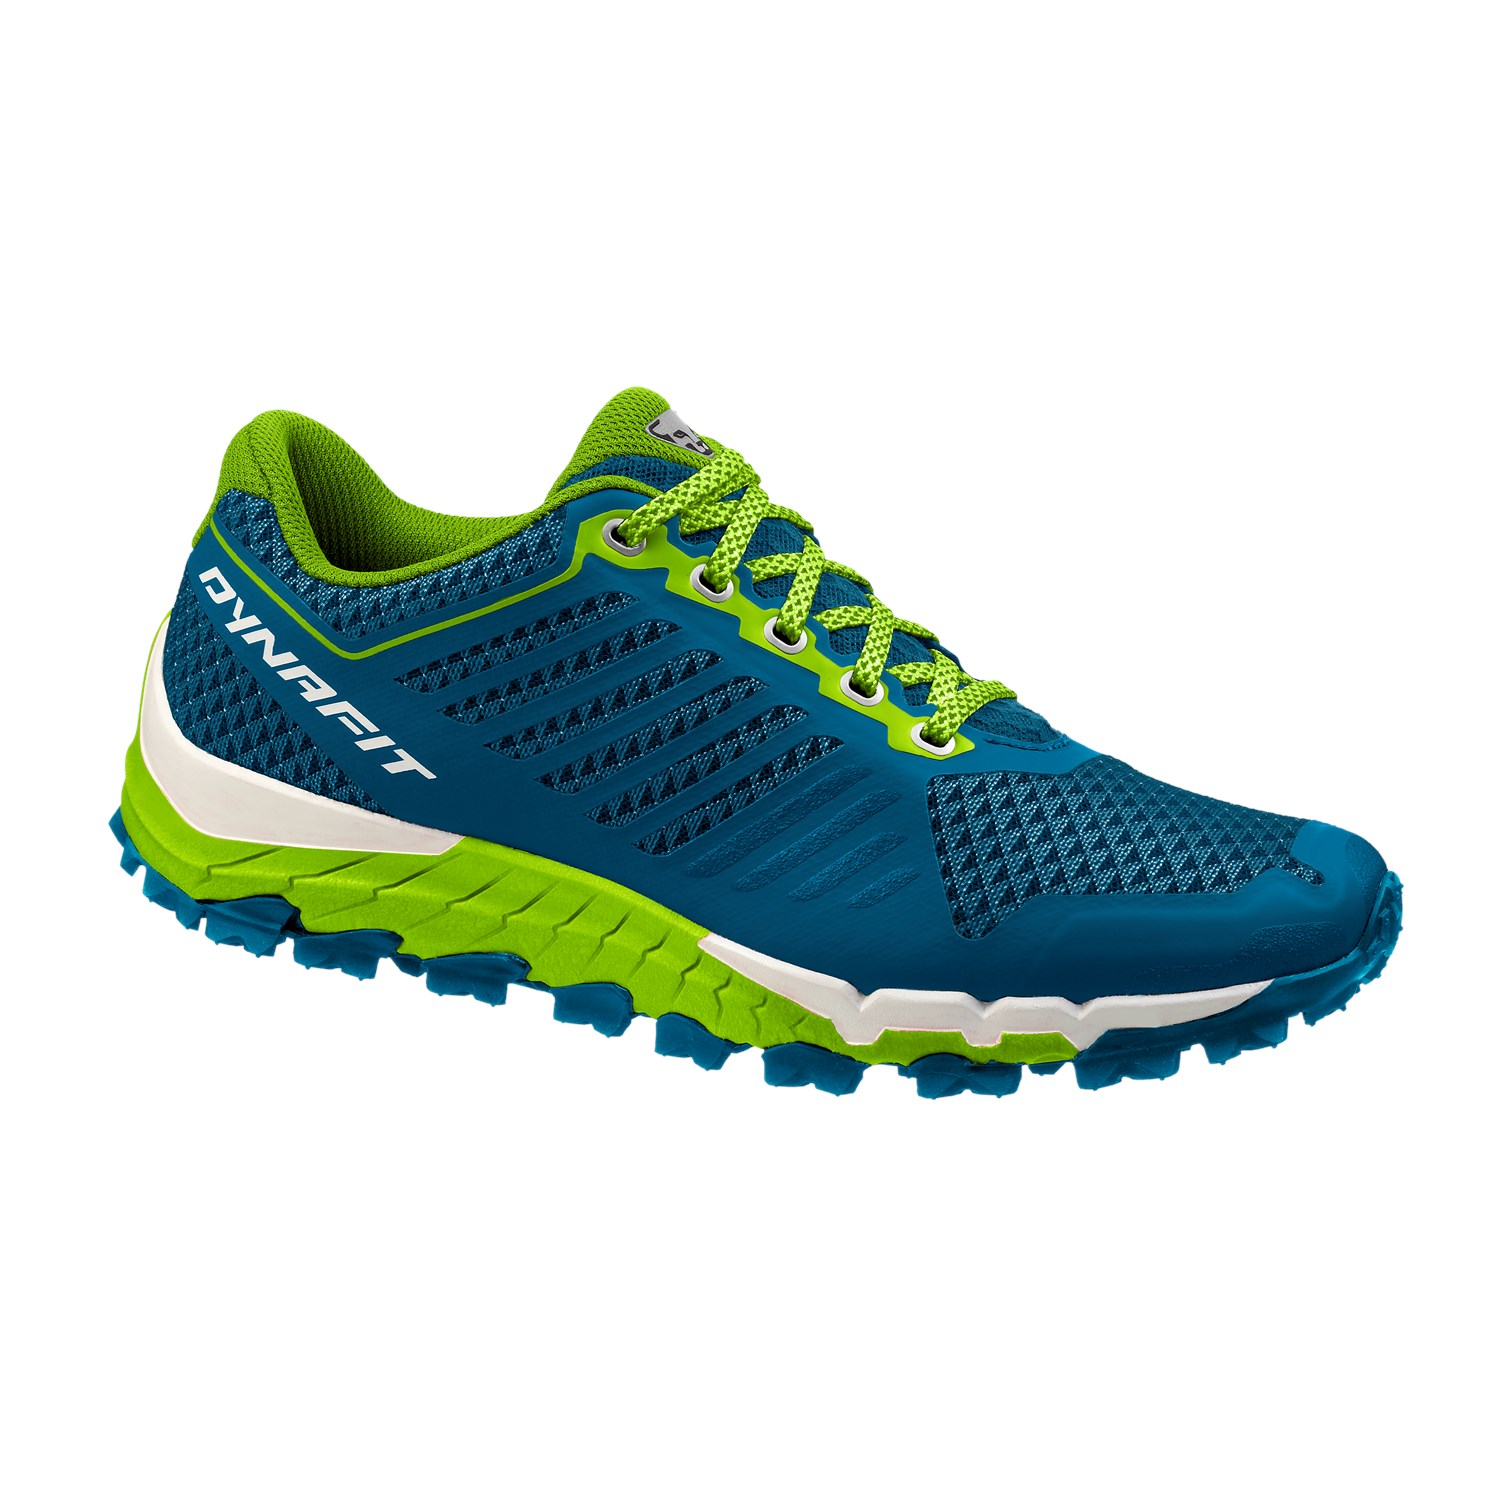 Dynafit Trailbreaker Shoes | Running shoes